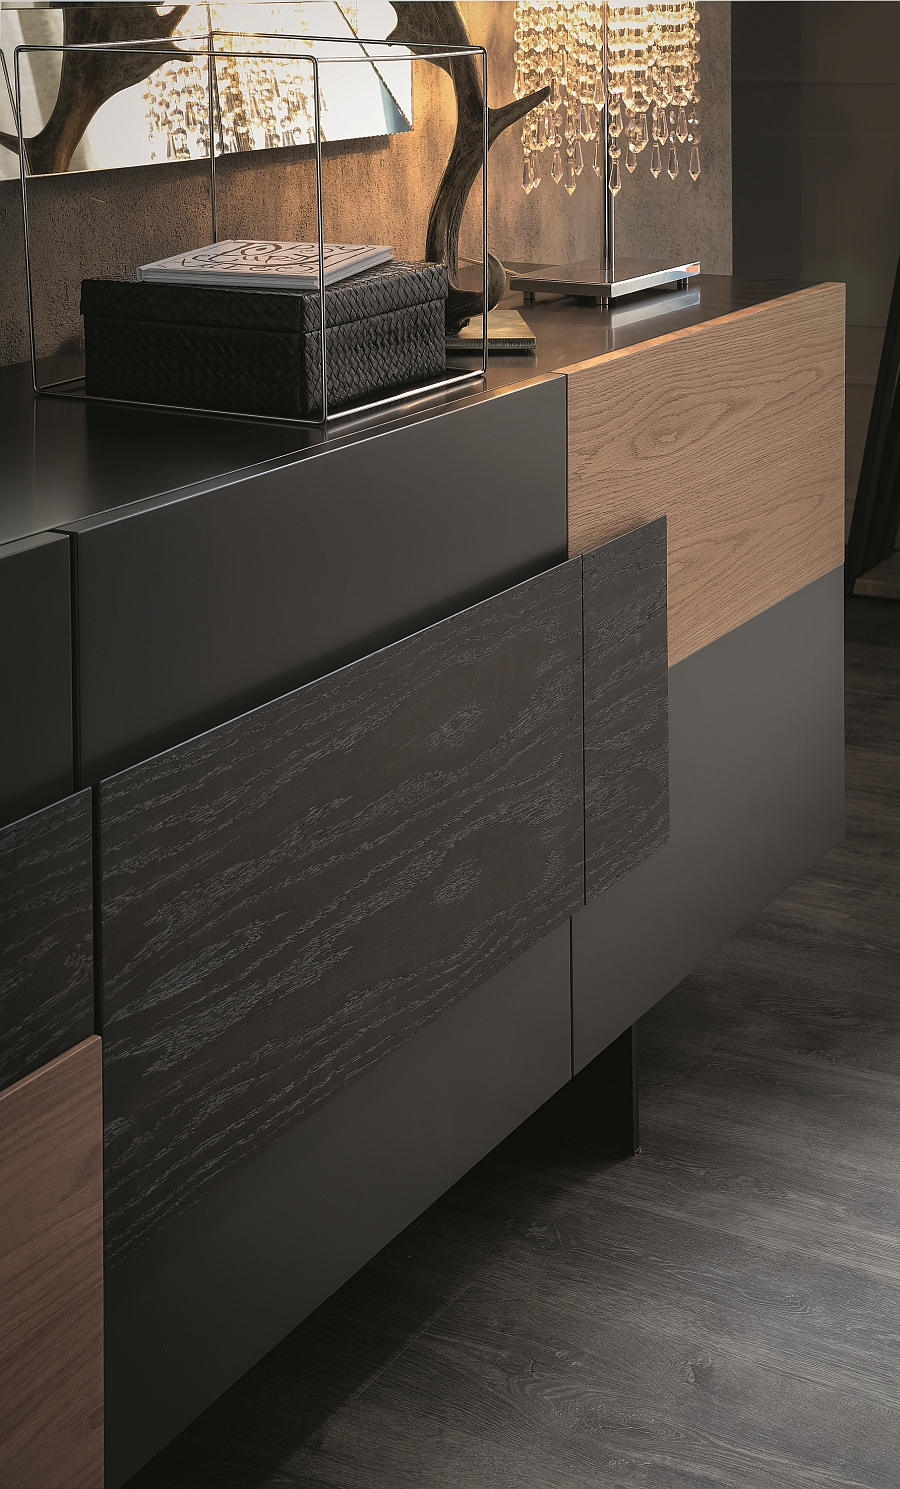 Sideboard in natural oak adds inviting warmth to the room